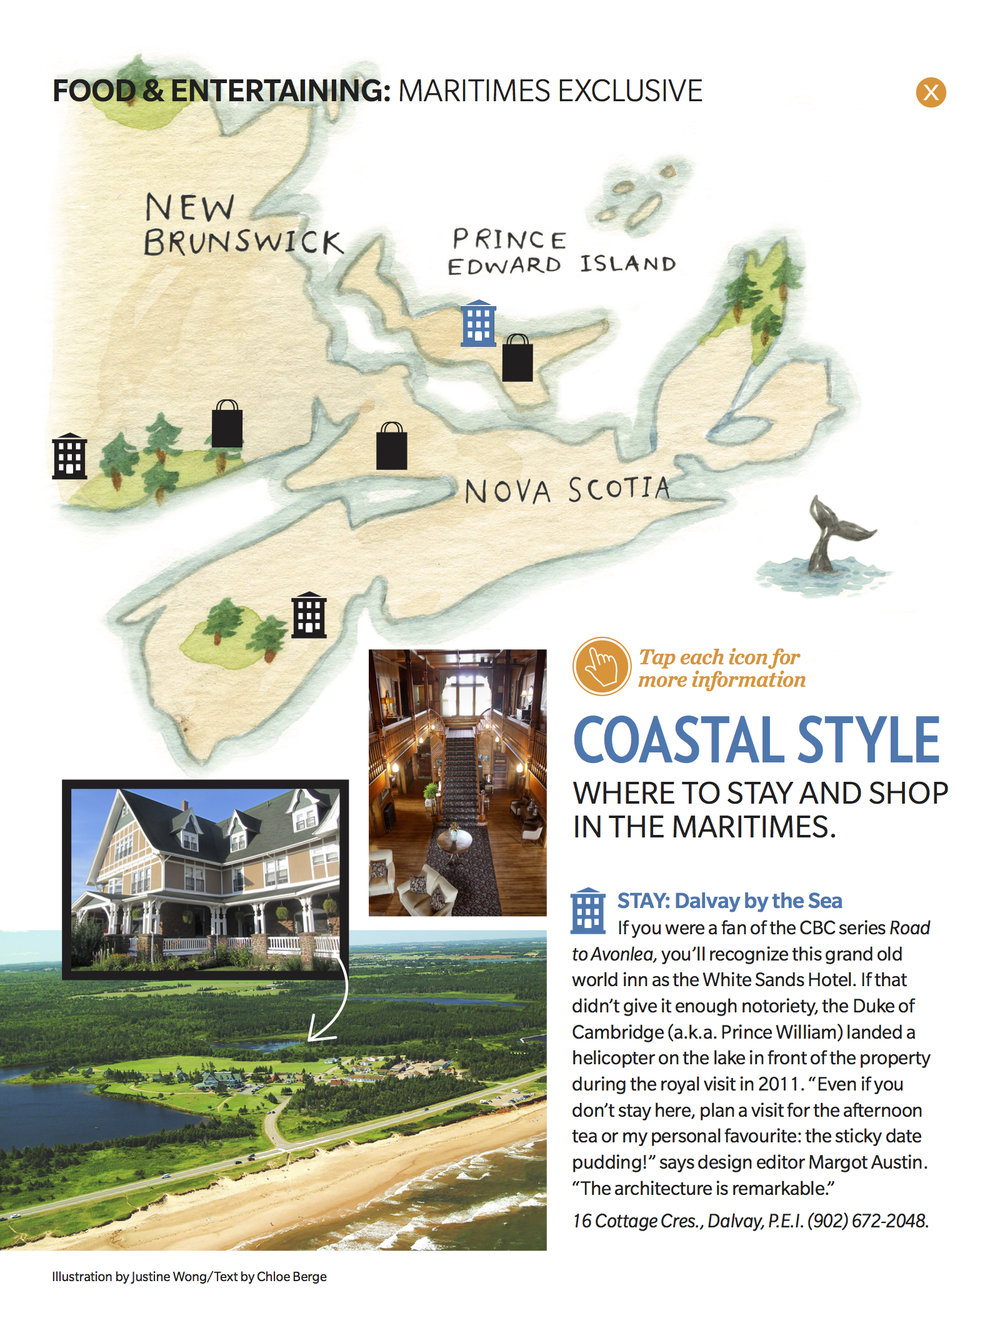 East Coast Travel Guide_House & Home Magazine iPad Edition_July 20143.jpg